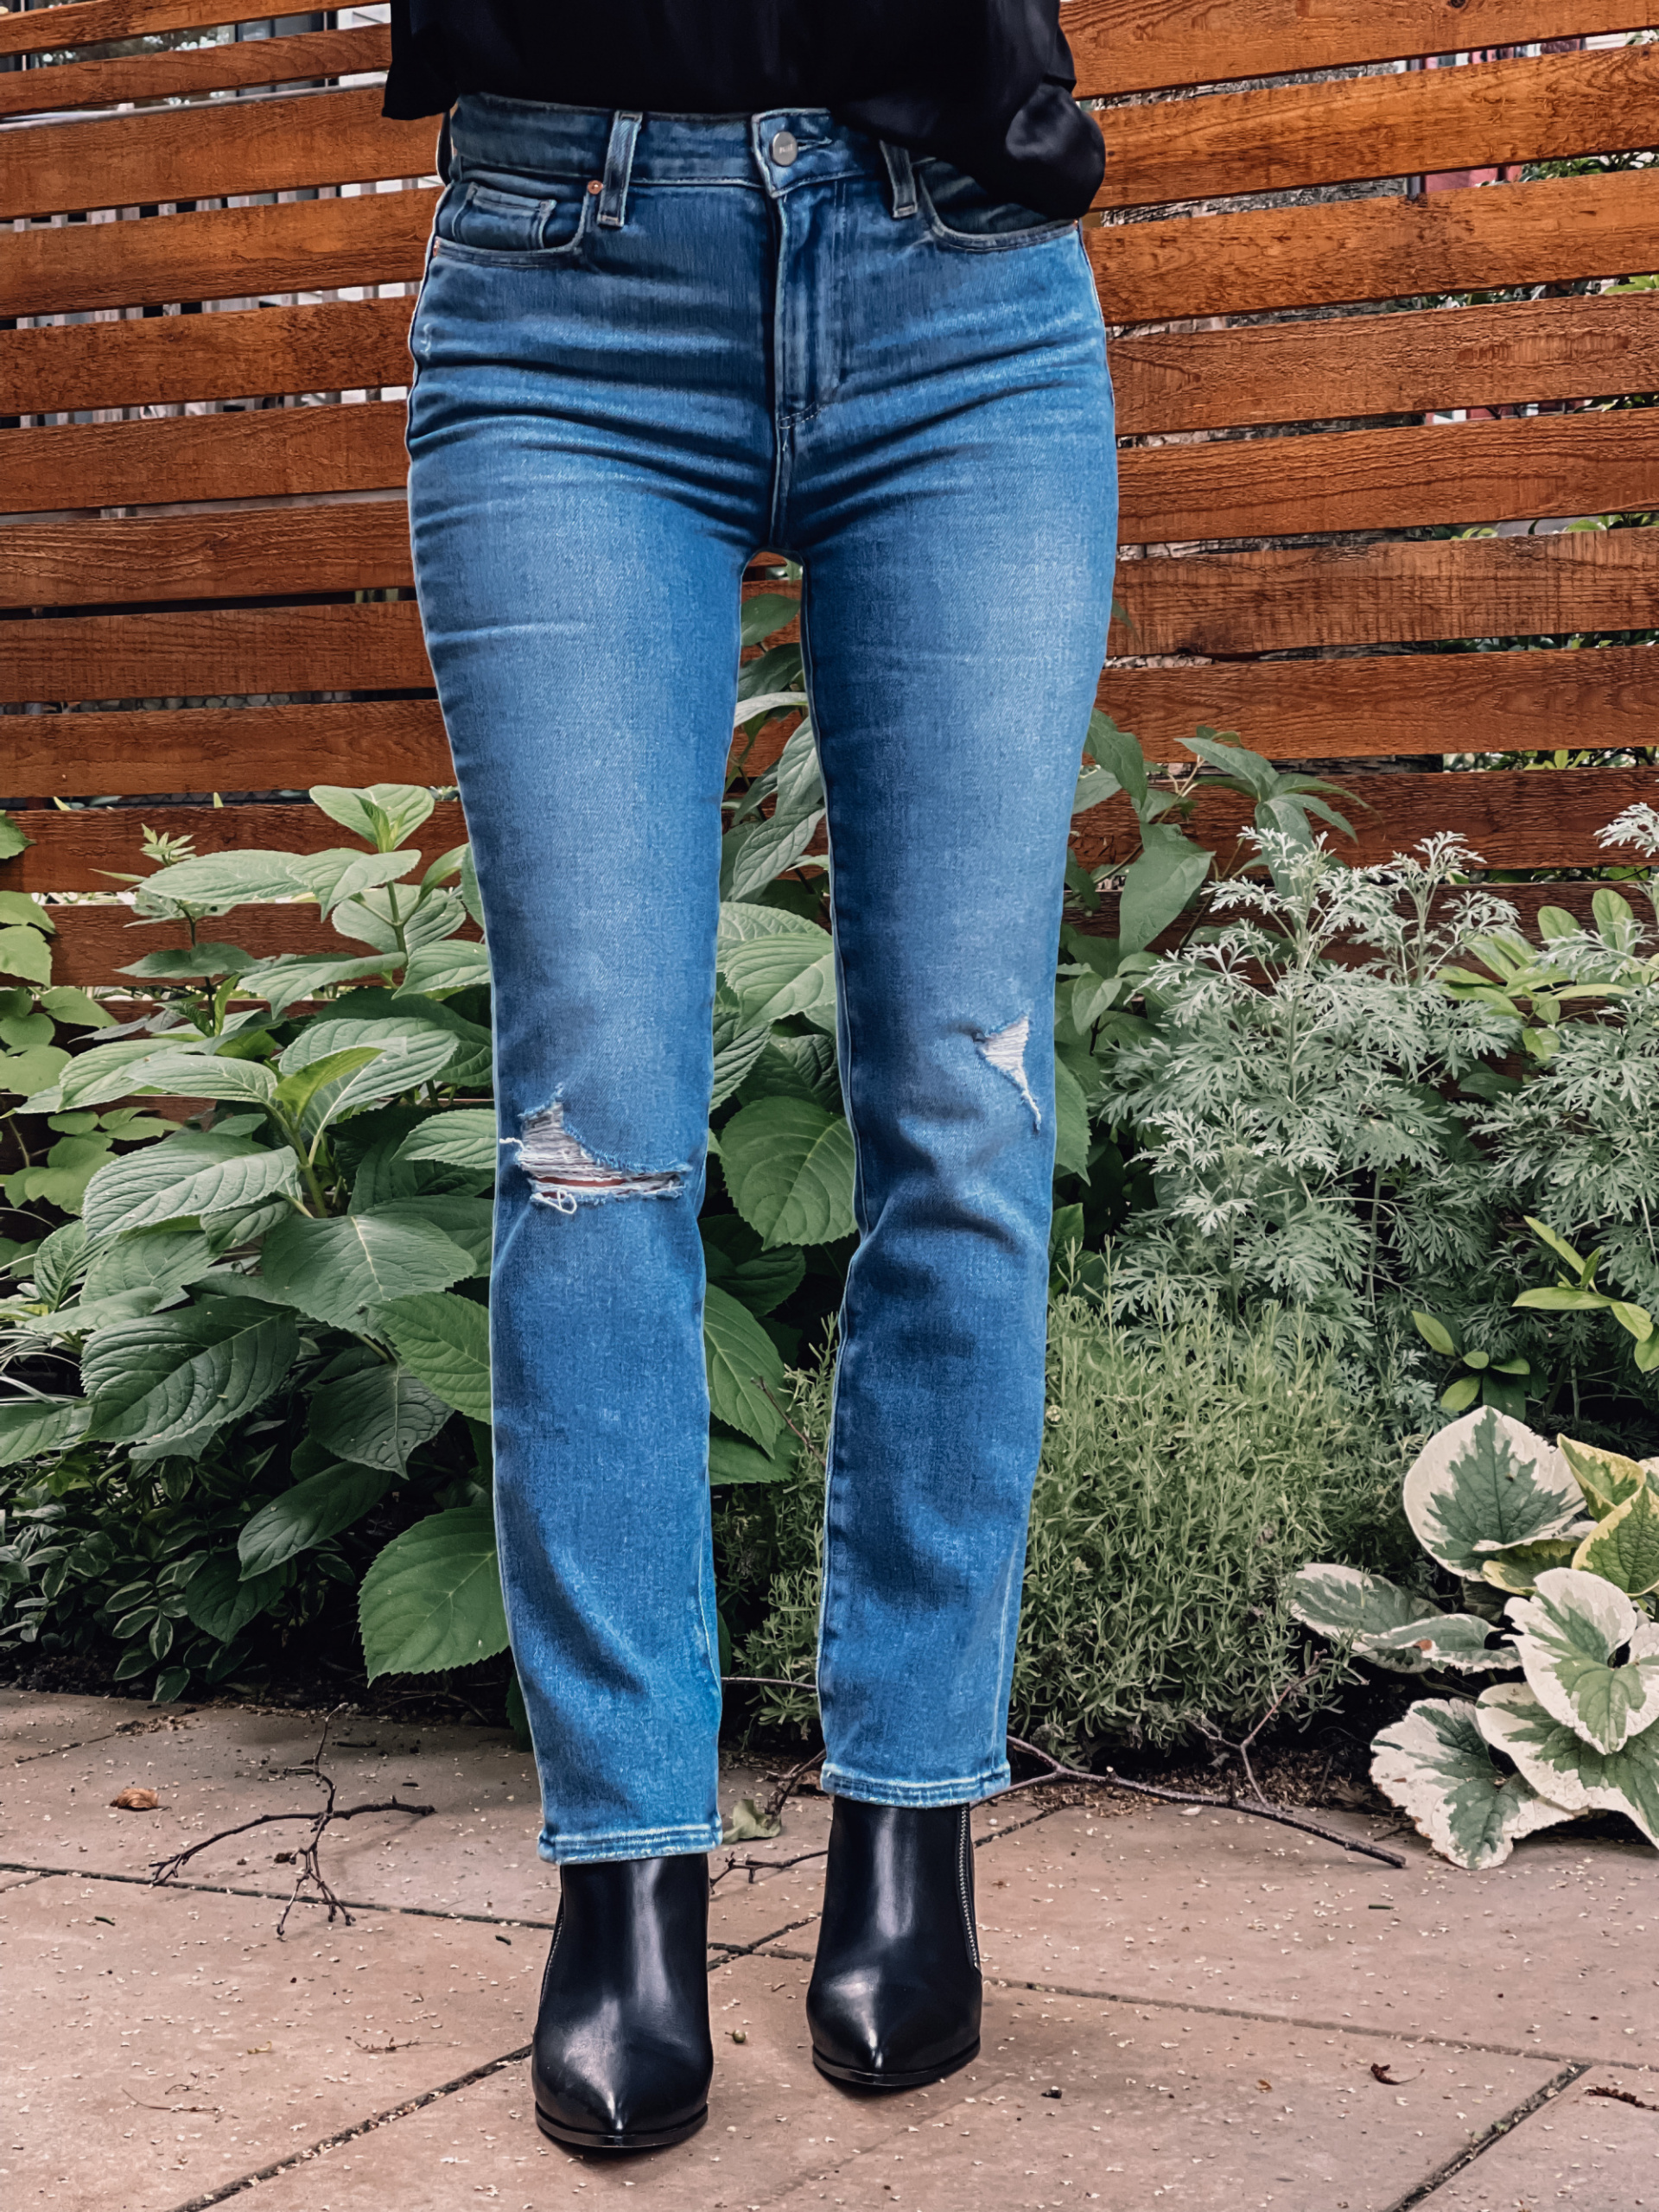 Nordstrom Anniversary Sale 2021, Nordstrom Anniversary Sale. anniversary sale, nsale nordstrom sale, nsale 2021, nordstrom sale 2021, nordstrom sale best finds, best nordstrom sale items, nordstrom sale jeans, paige ripped jeans